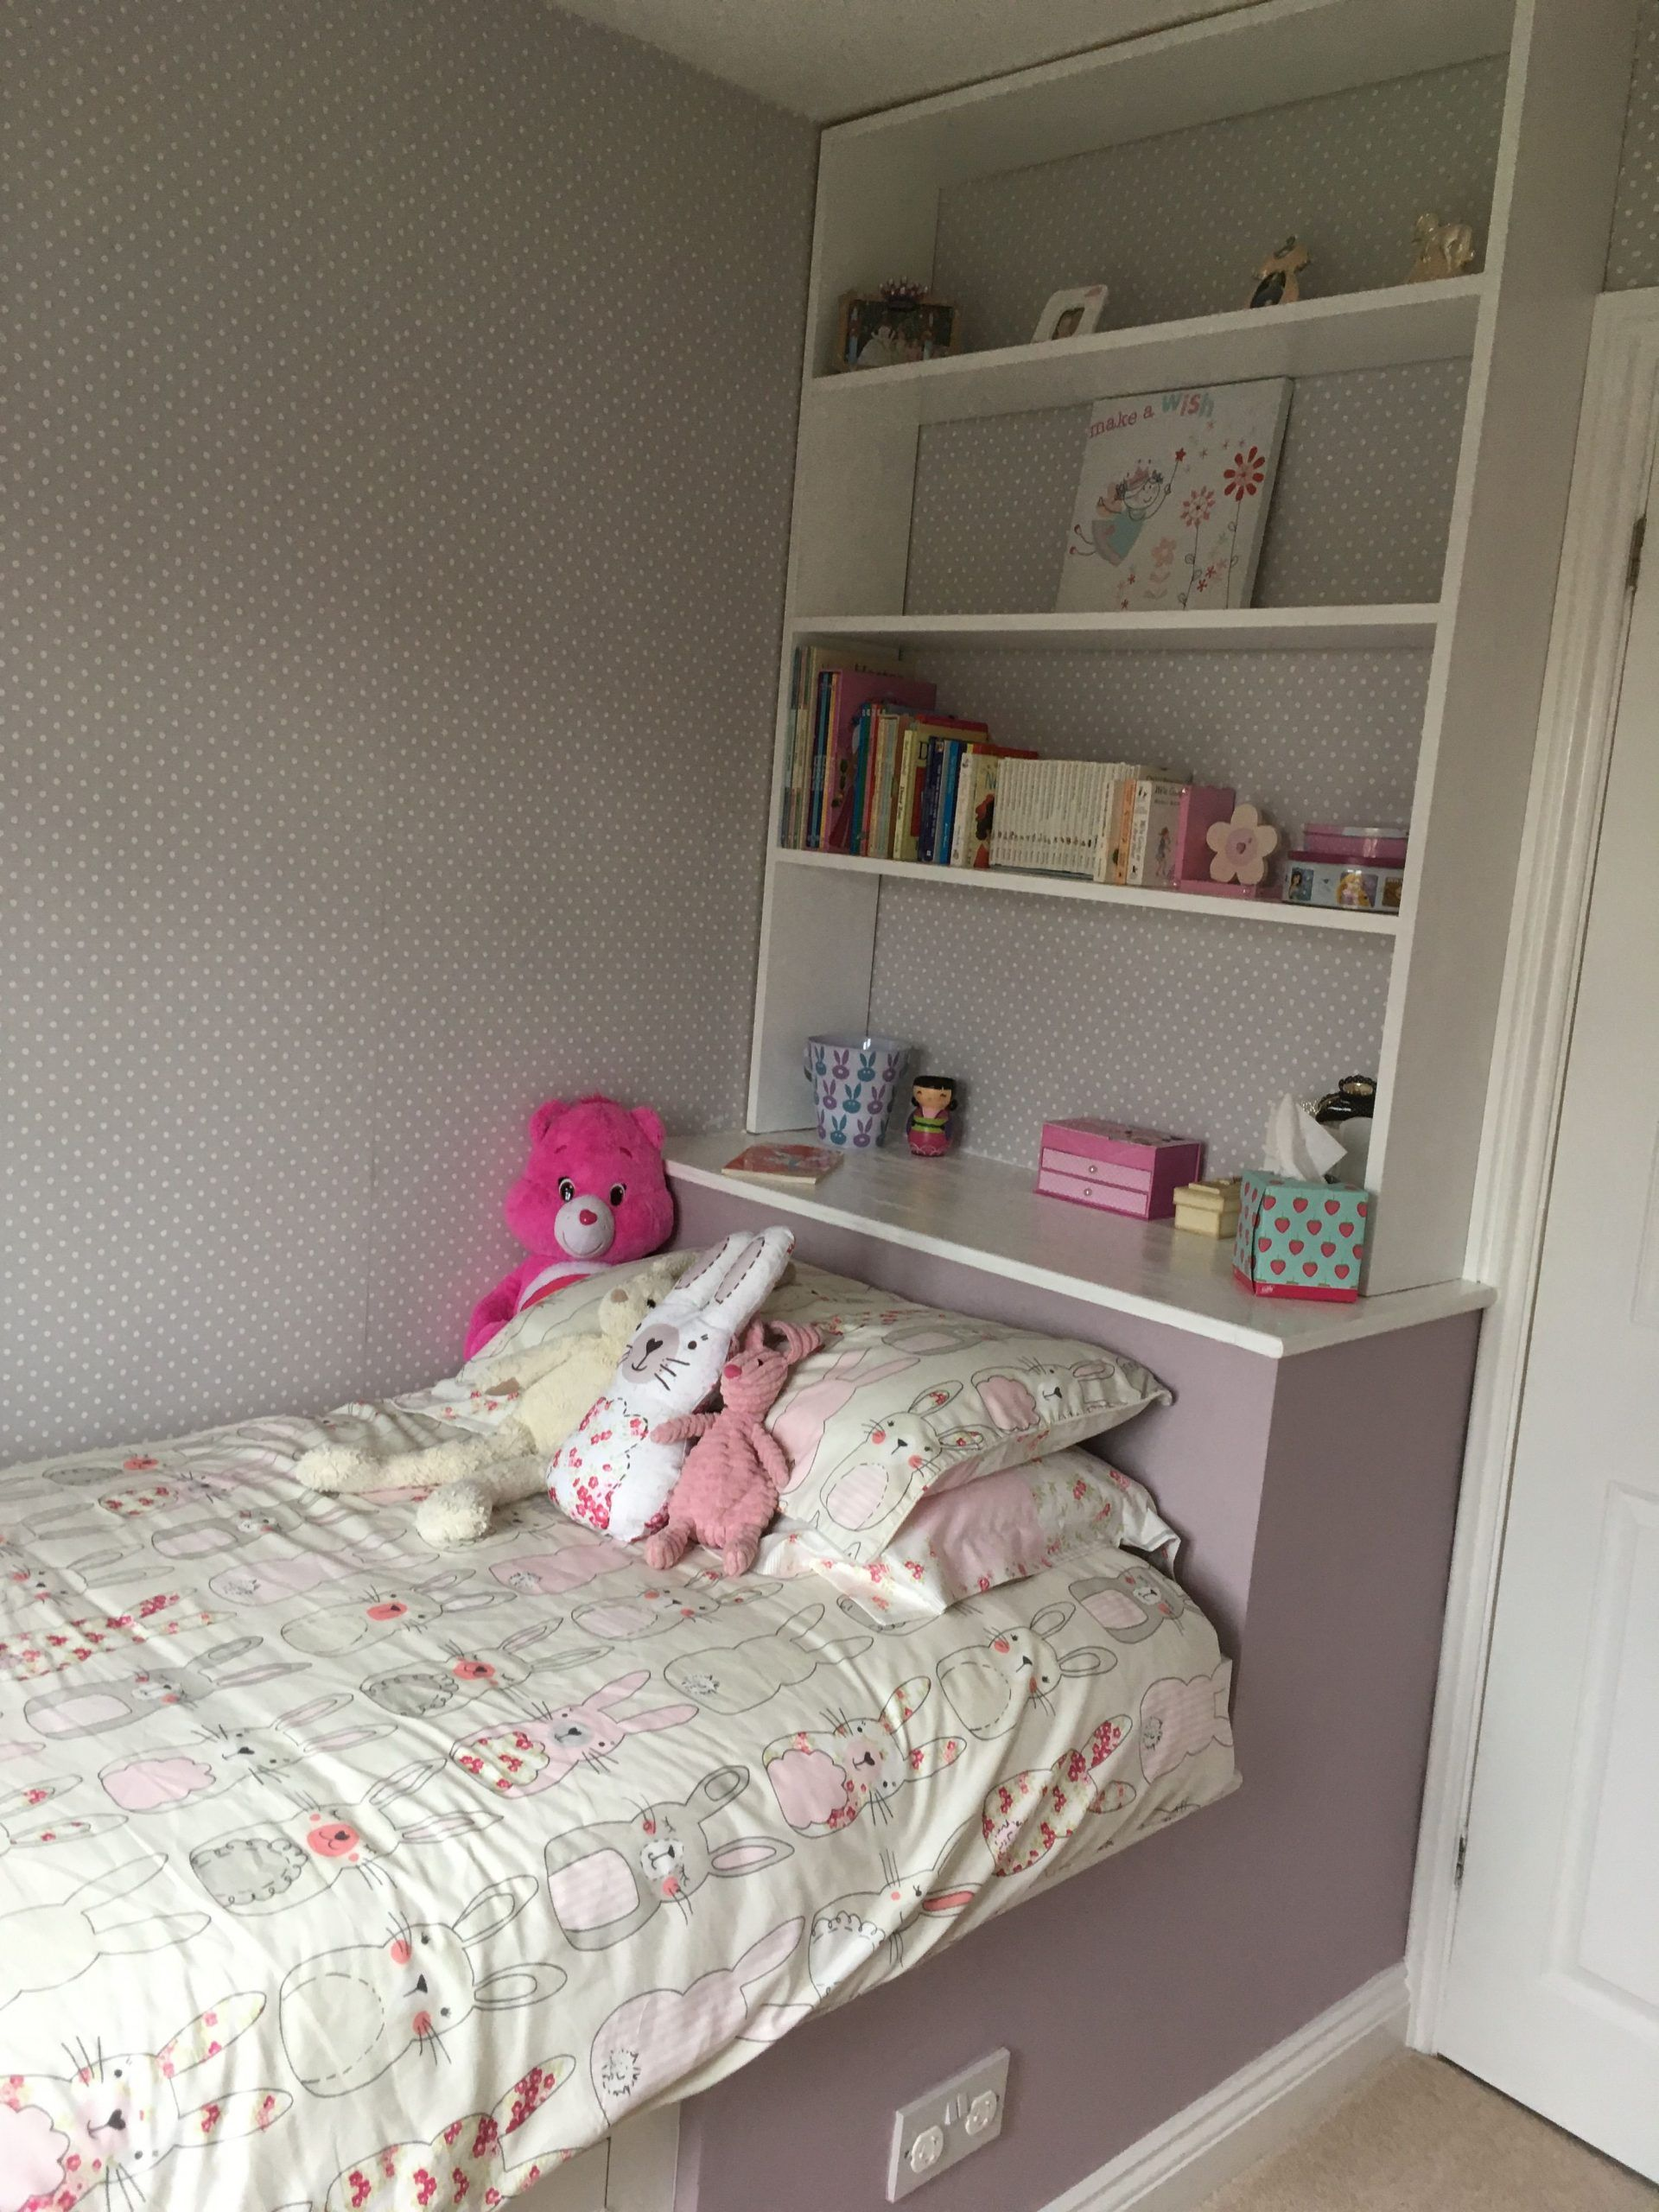 Childrens Small Bedroom Storage Ideas Perfect Finish With Bedding Painted Areas And Storages Lips In 2020 Box Room Bedroom Ideas Small Bedroom Storage Box Bedroom